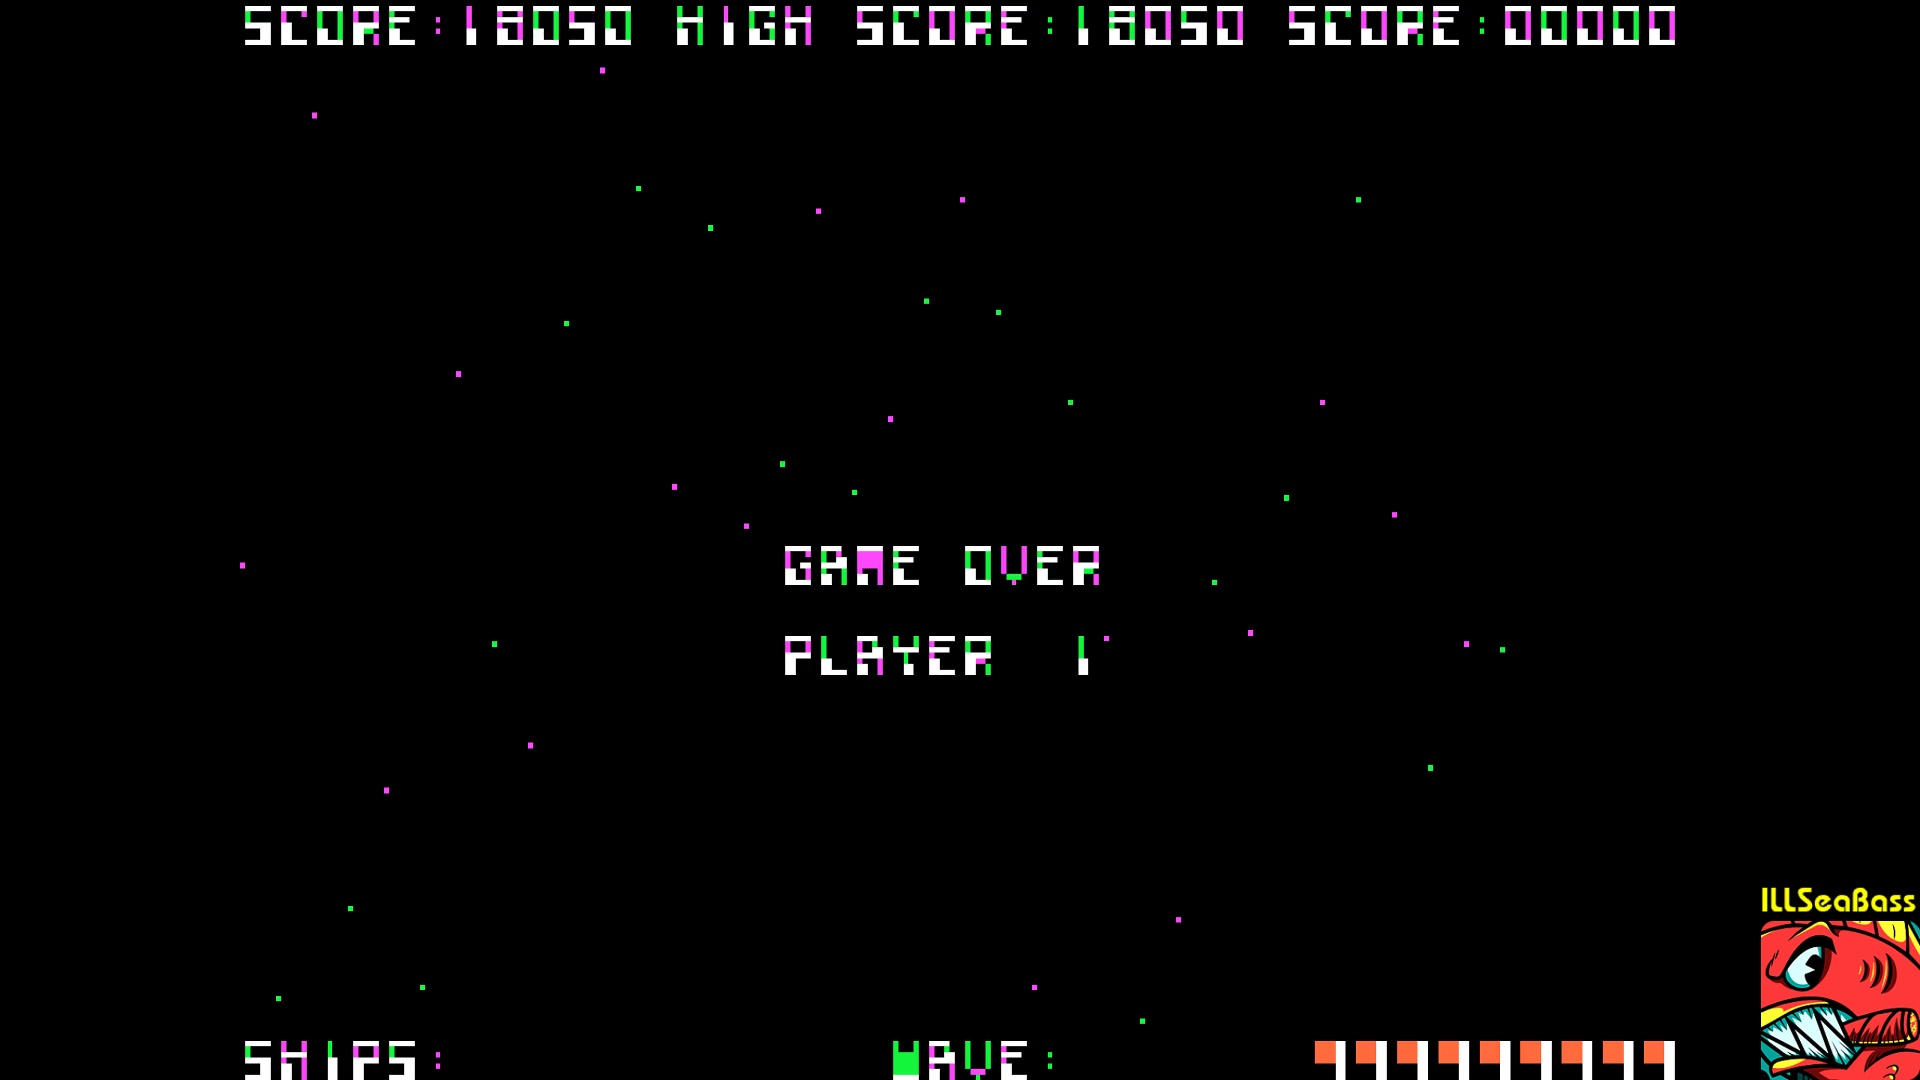 ILLSeaBass: Galaxian [Atarisoft] (Apple II Emulated) 18,050 points on 2018-01-12 00:33:41